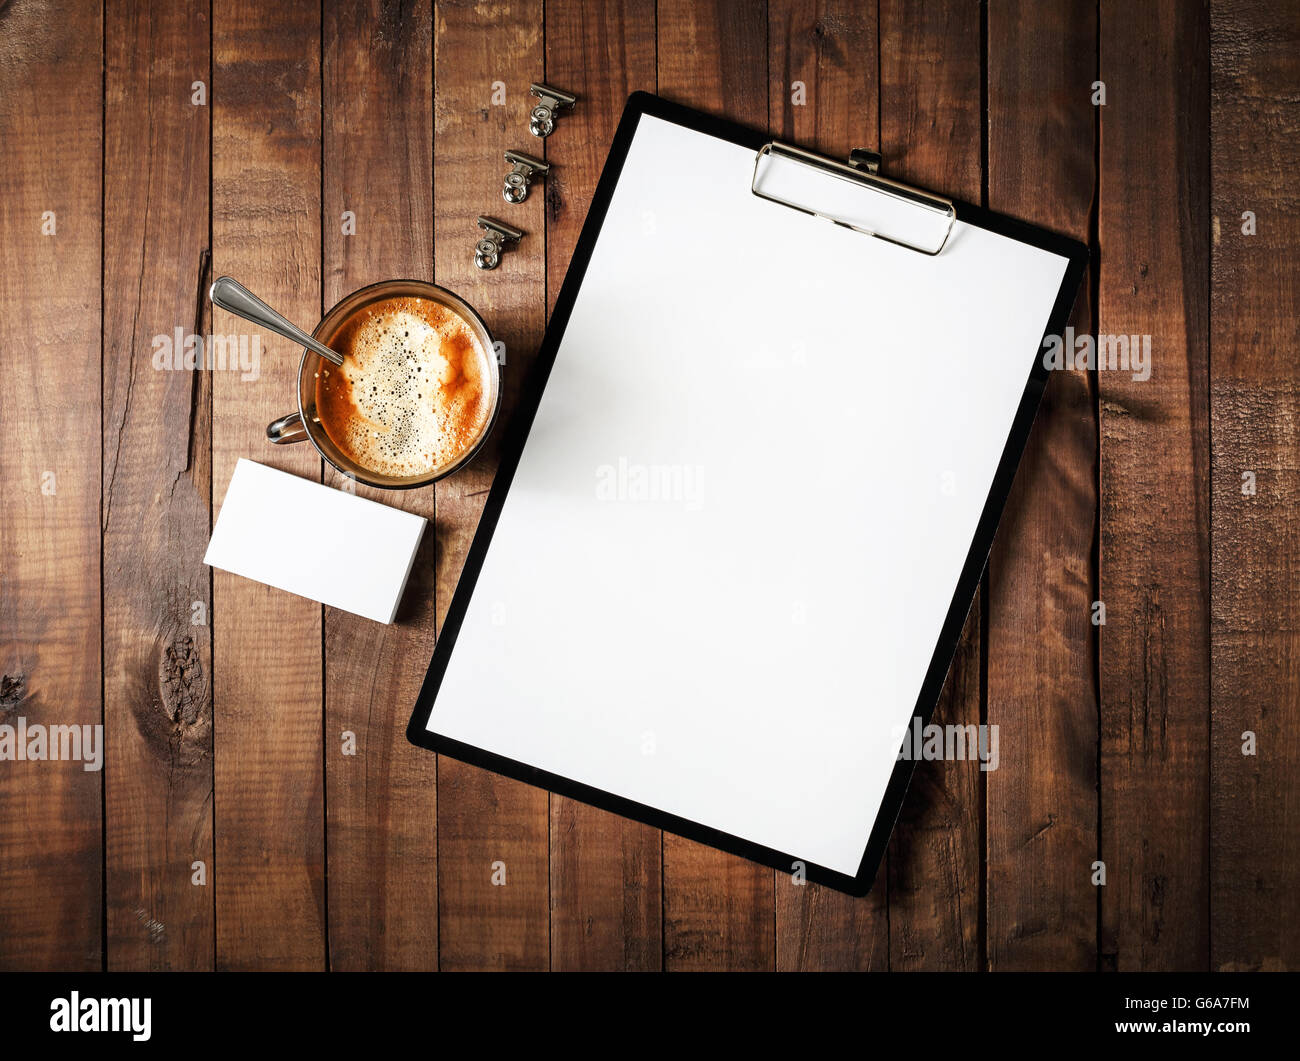 photo of blank stationery on vintage wooden table background blank